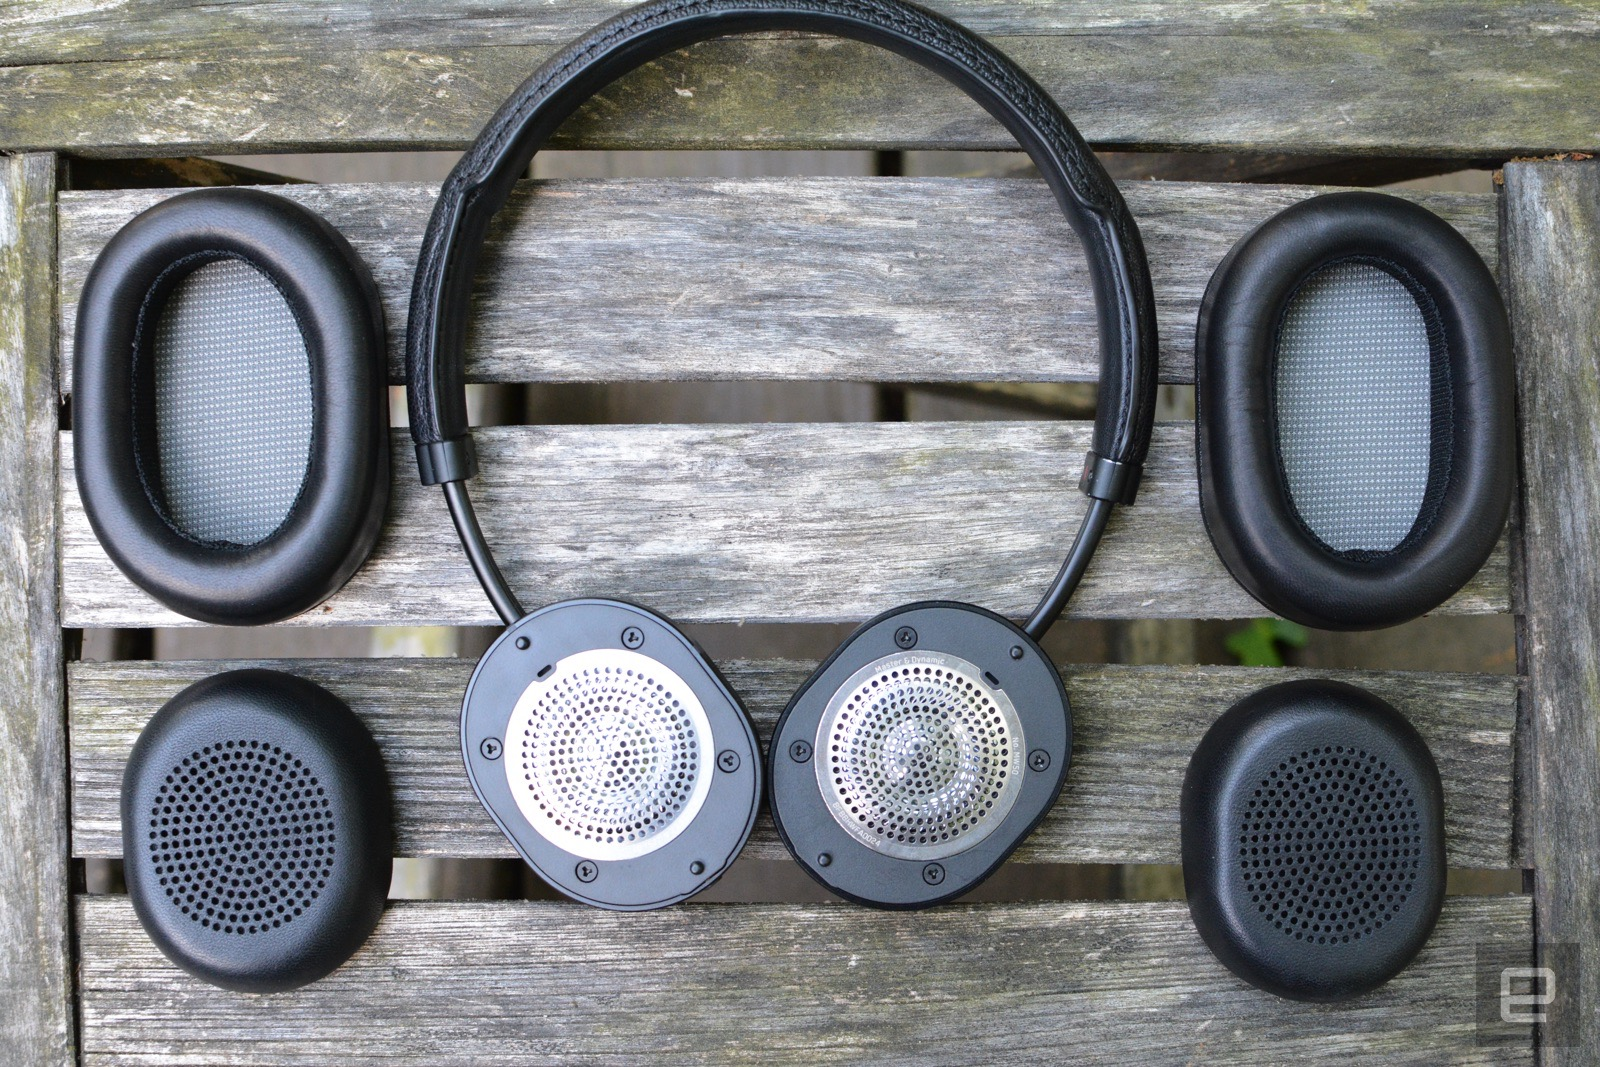 MW50+ headphones let you choose between on-ear or over-ear